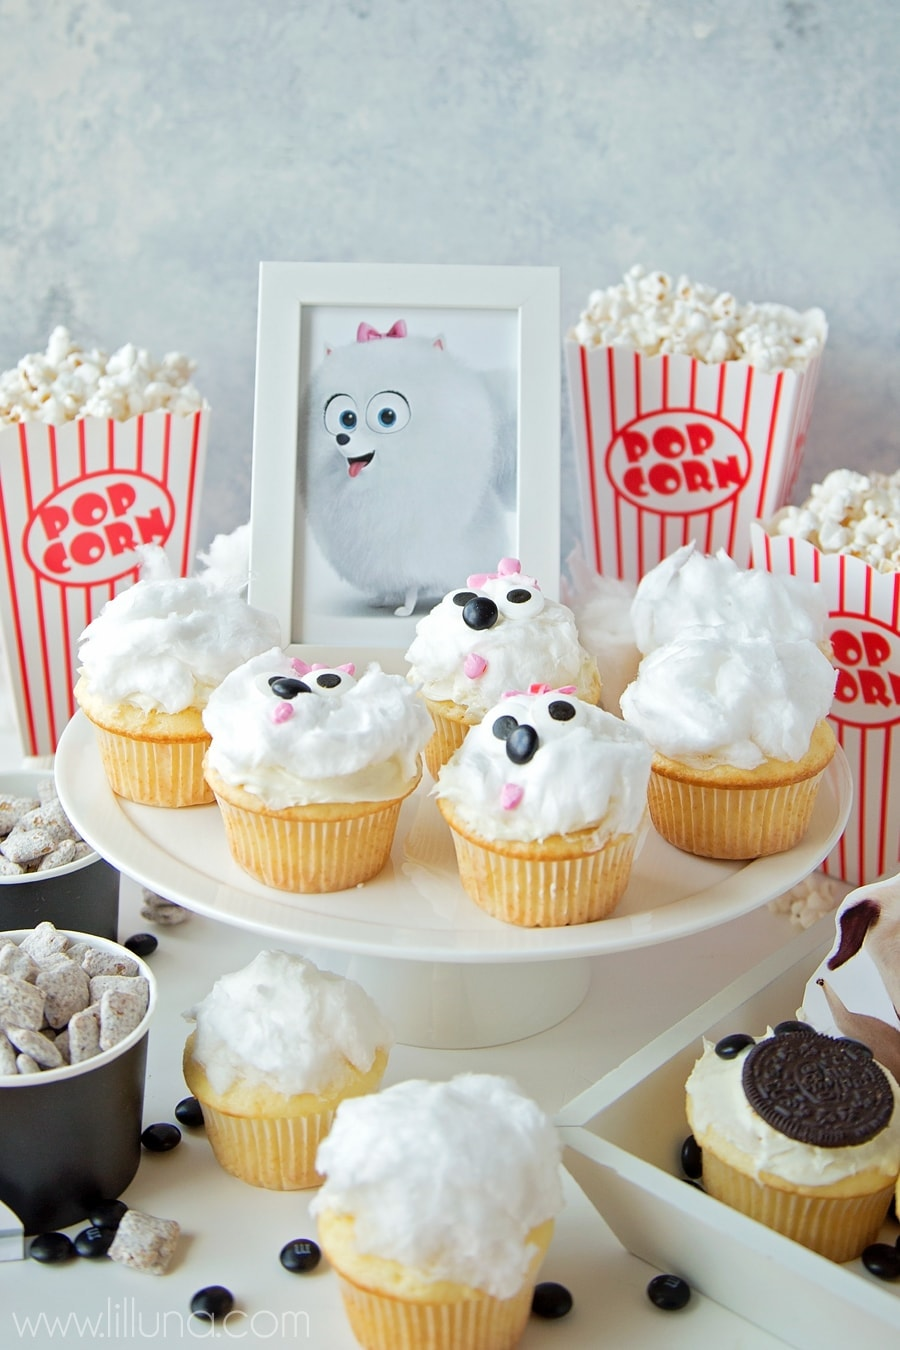 The Secret Life of Pets Movie Night idea with Gidget cupcakes, Puppy Chow and Paw Print Cupcakes.